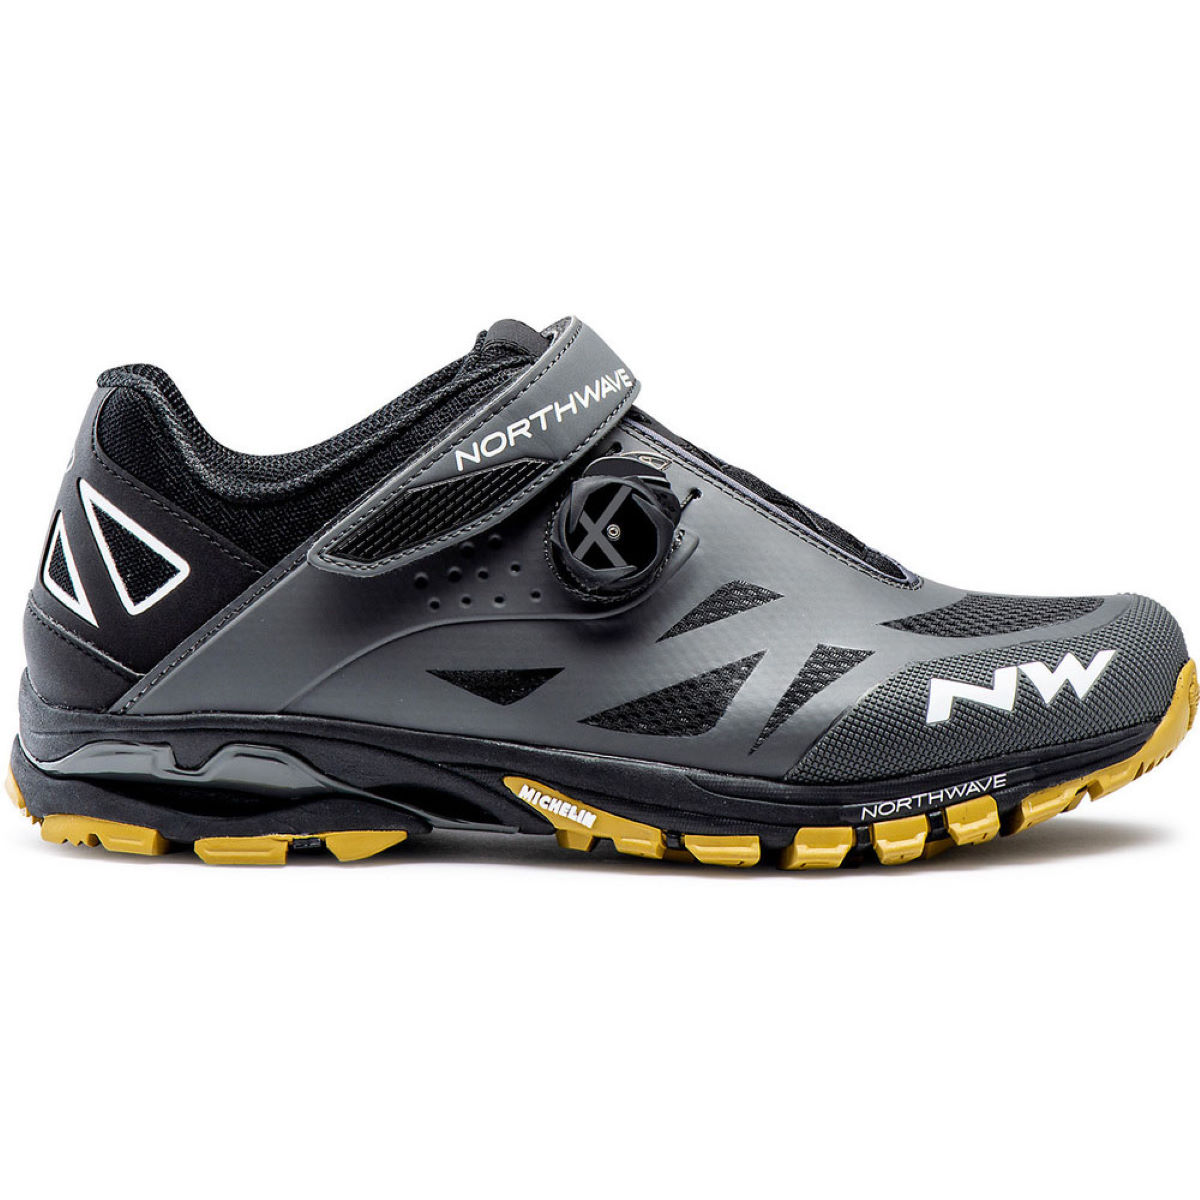 Northwave Spider Plus 2 Mtb Shoes - 39 Anthracite  Cycling Shoes